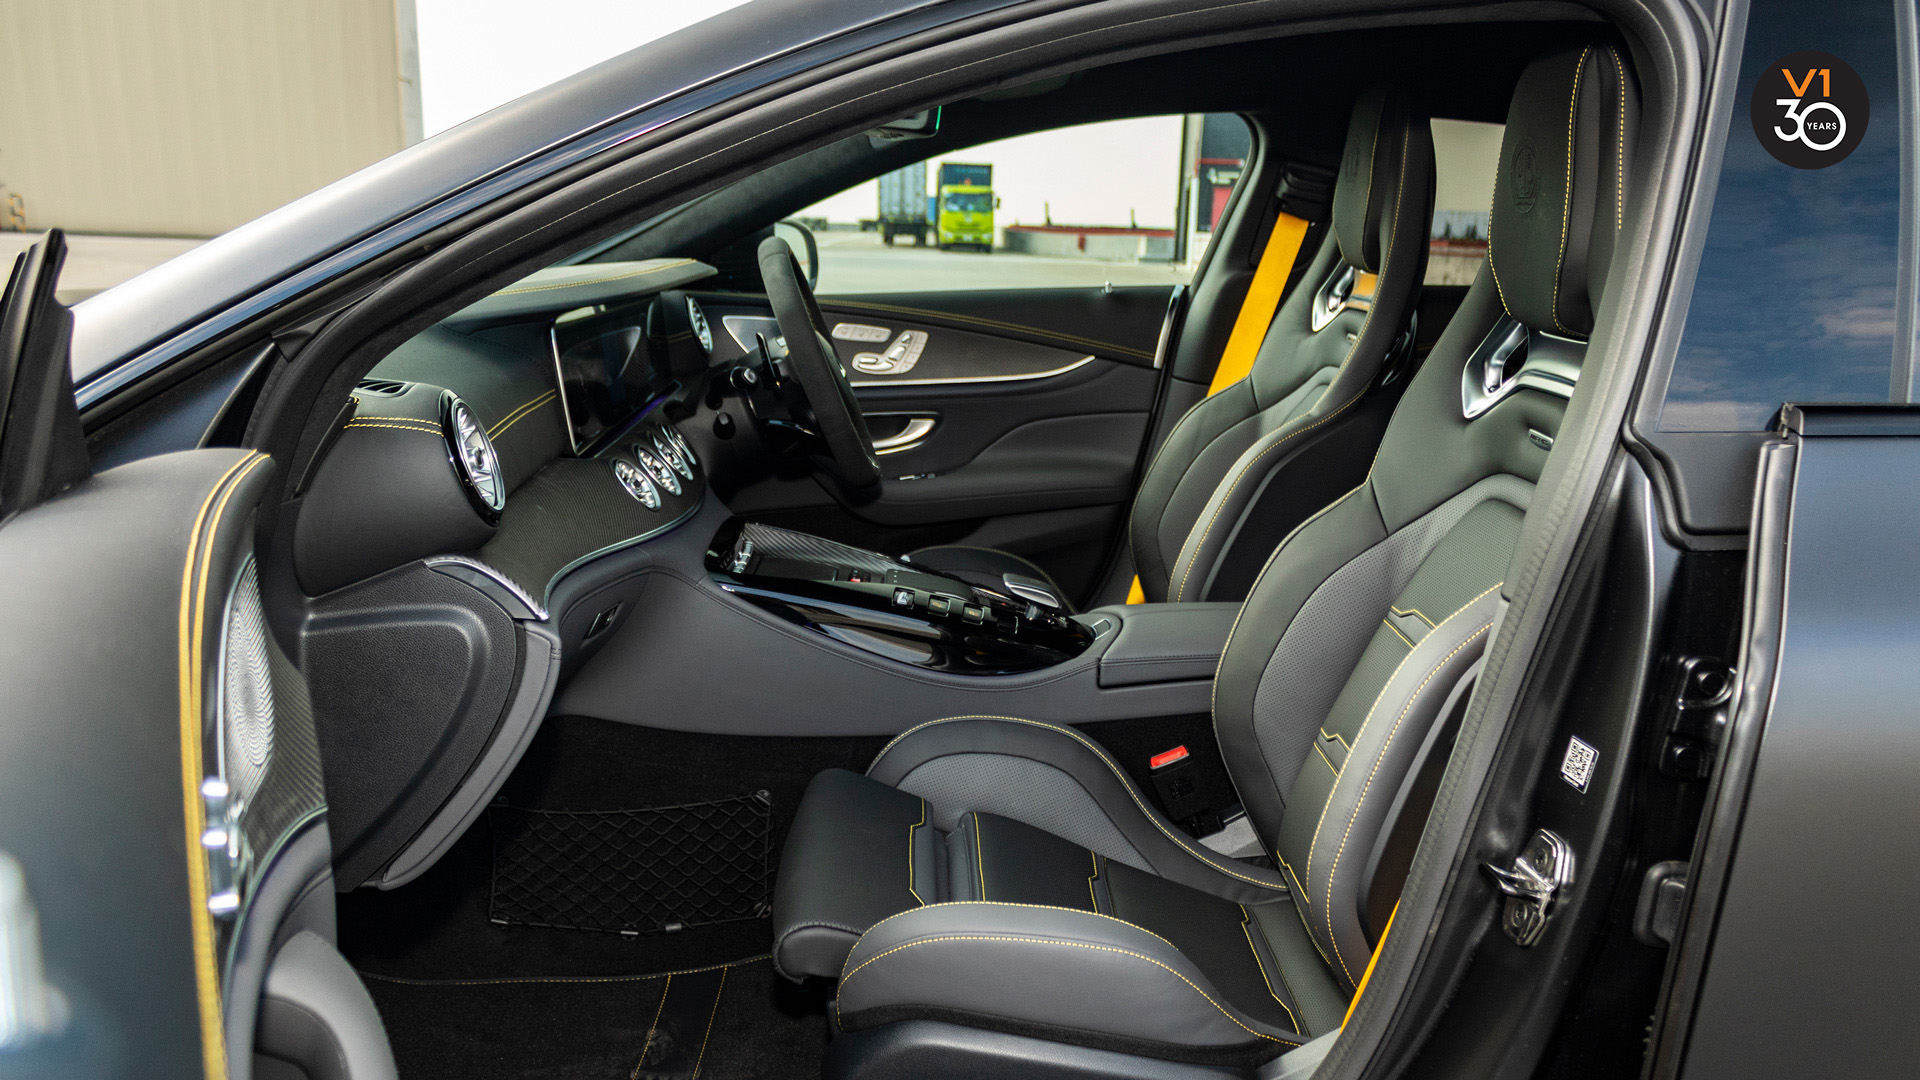 Mercedes GT63 S 4Matic+ Edition 1 AMG - Front Passenger Seat